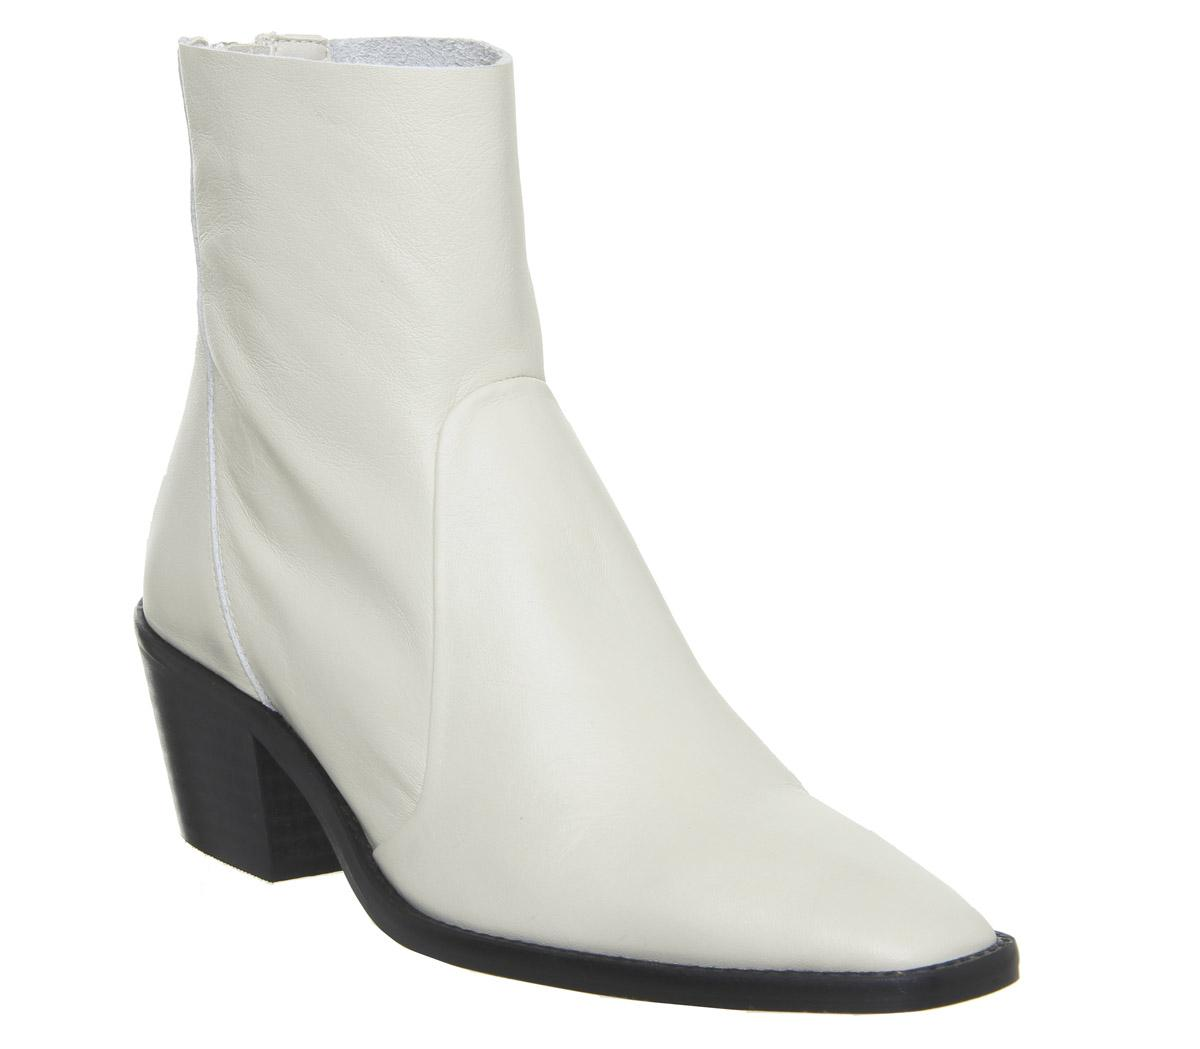 Arise Unlined Boots